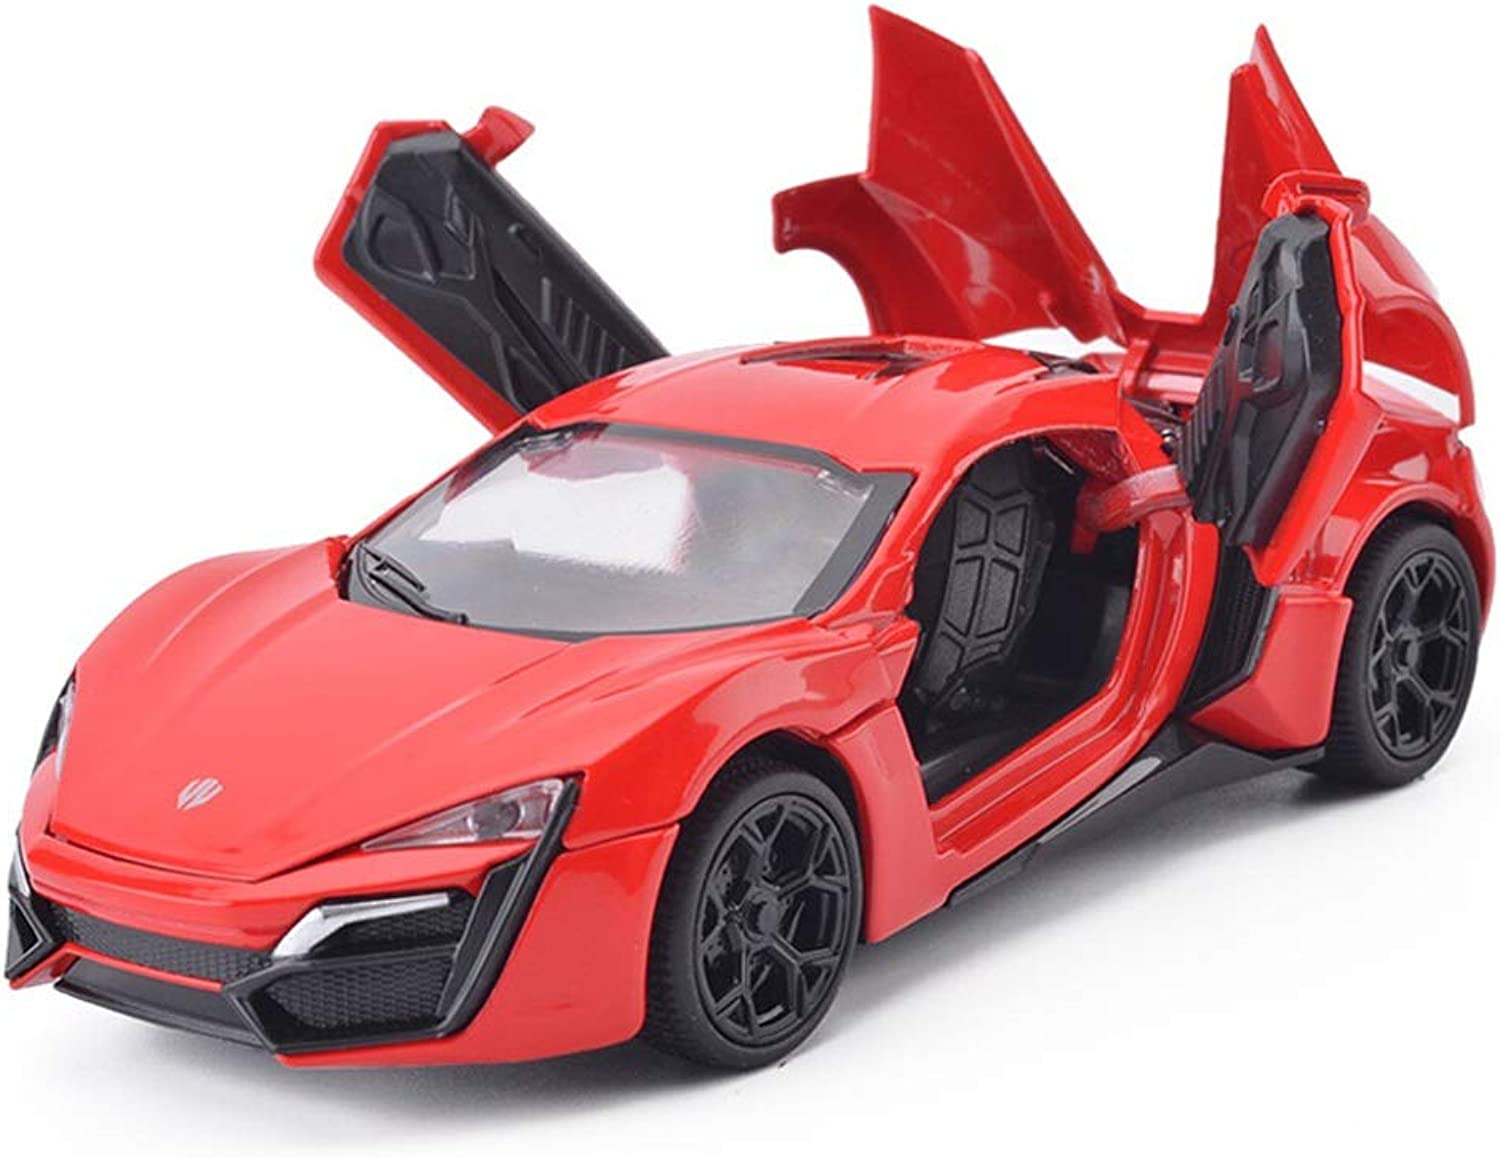 ZHPRZD Car Model 1 32 Simulation Car Model Alloy Die-Casting Sports Car Toy Ornaments Collection Jewelry 15.2x6.6x4CM Model (color   Red)